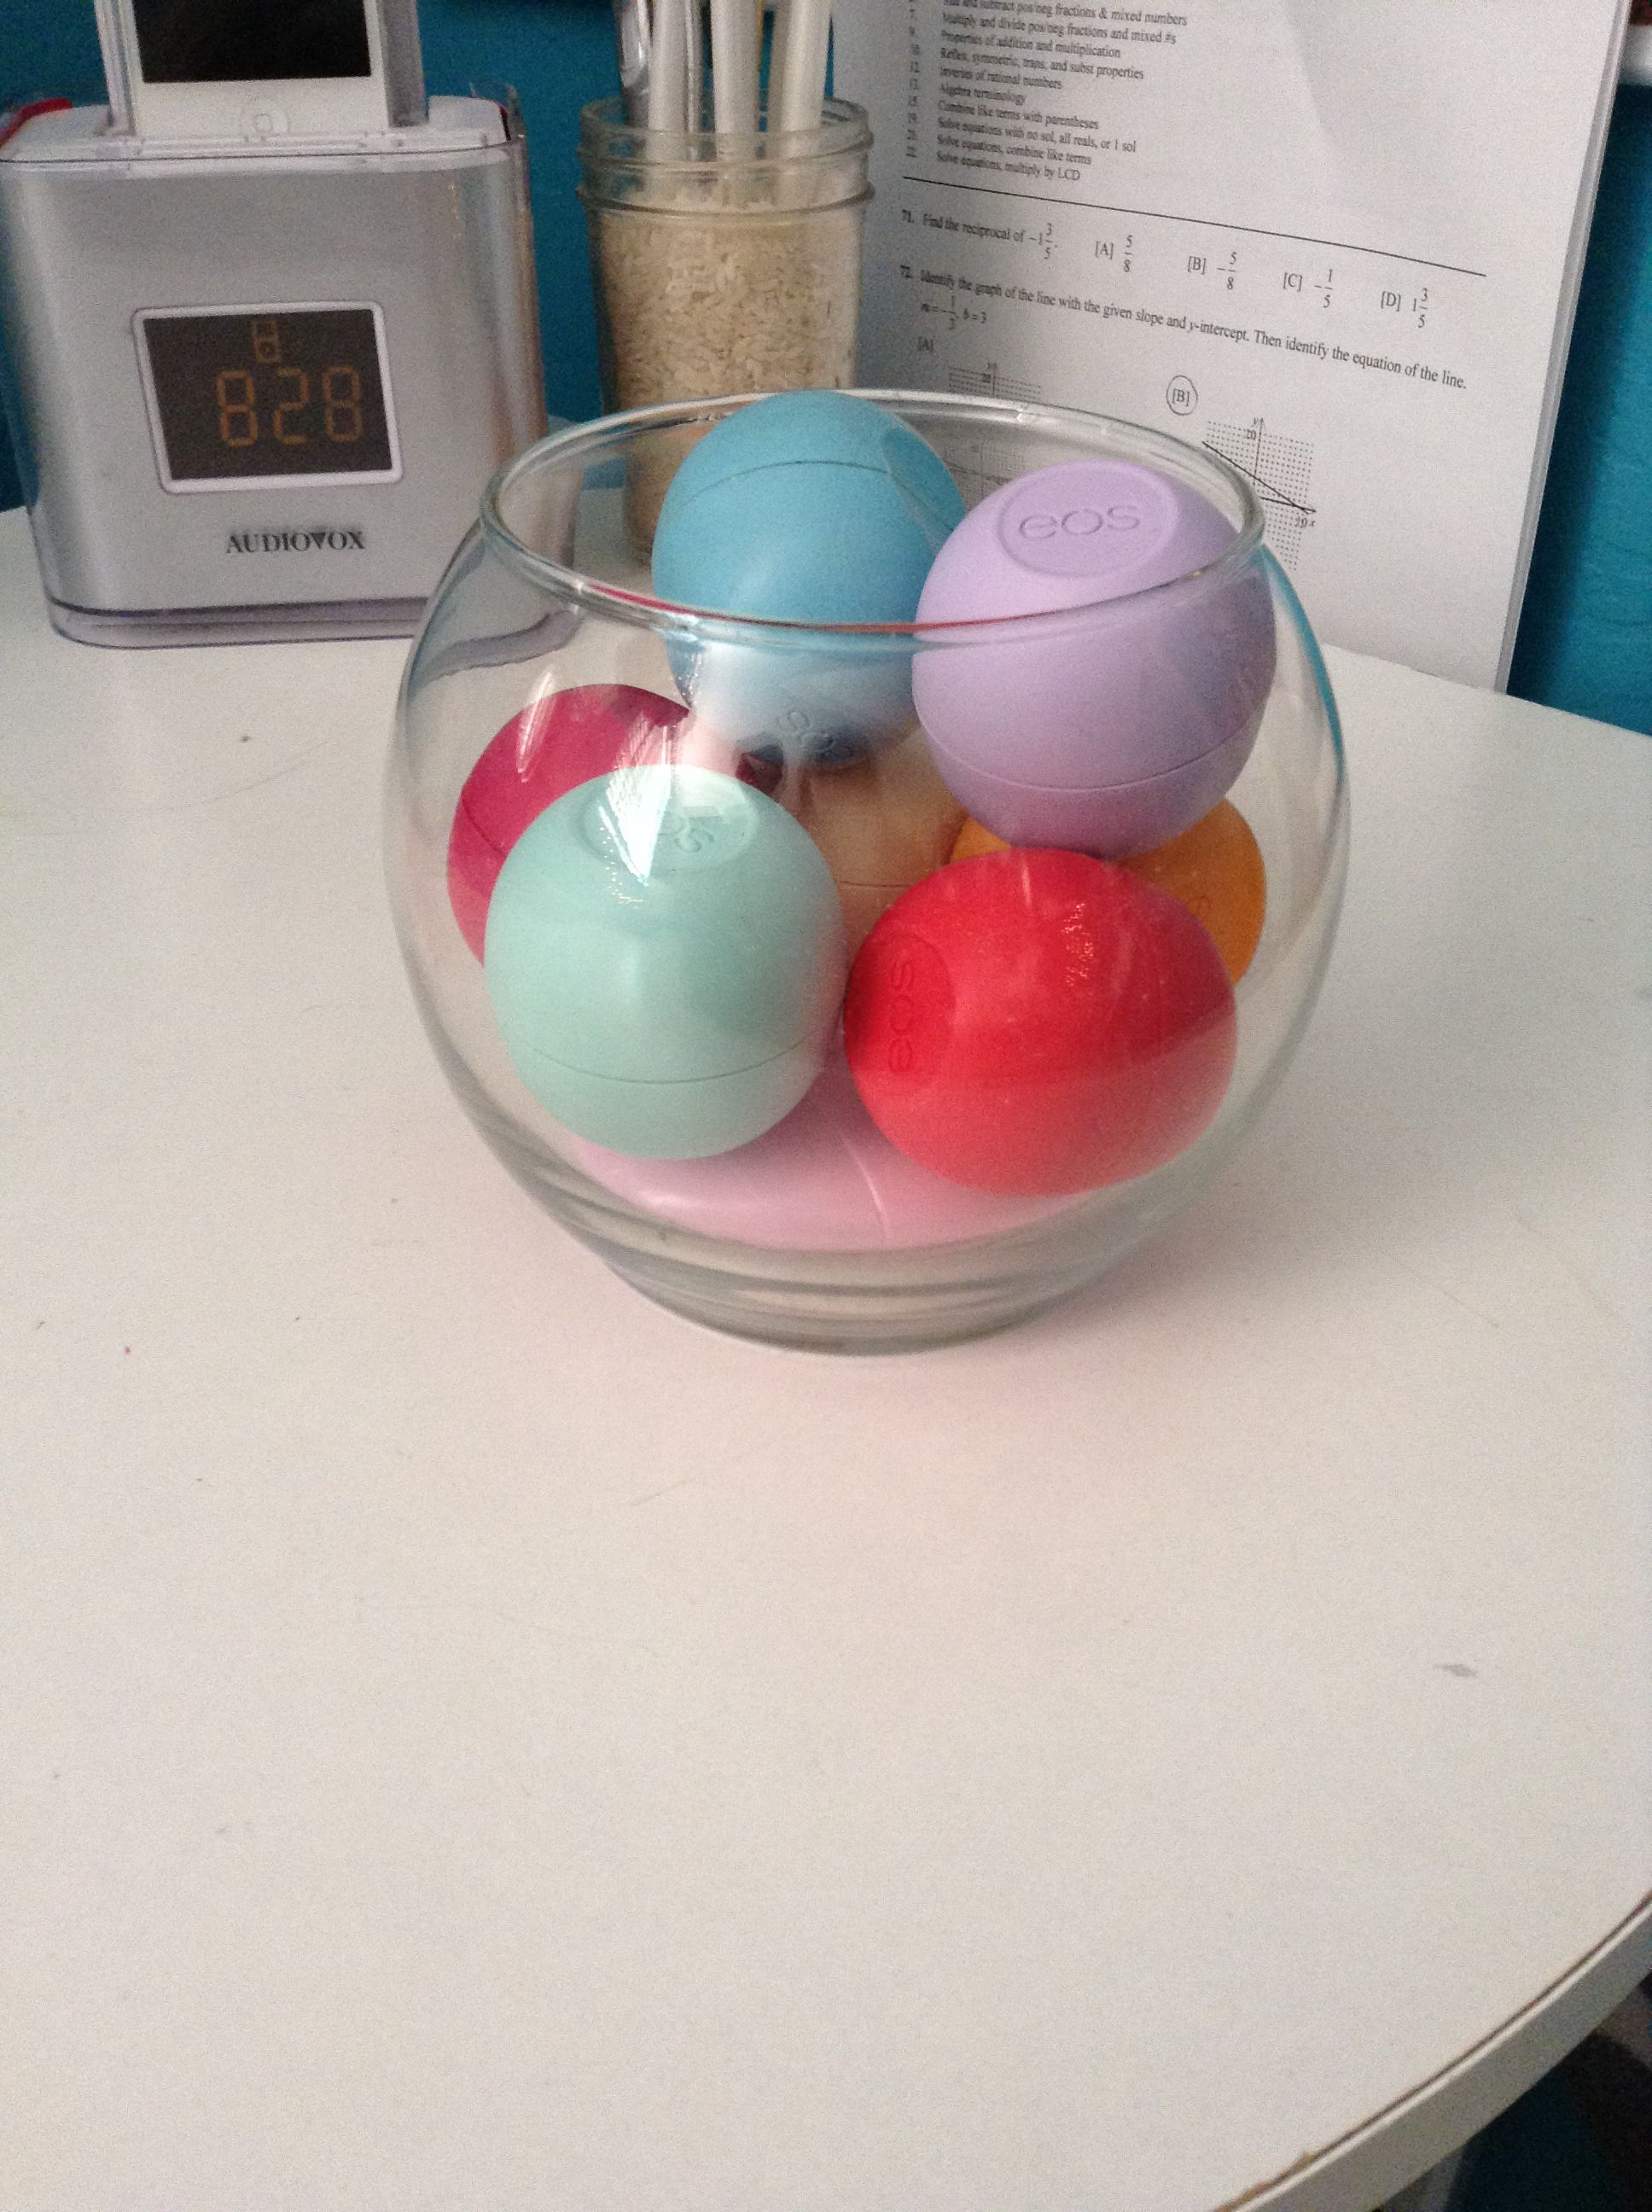 Fish Bowl Eos Lip Balm Holder